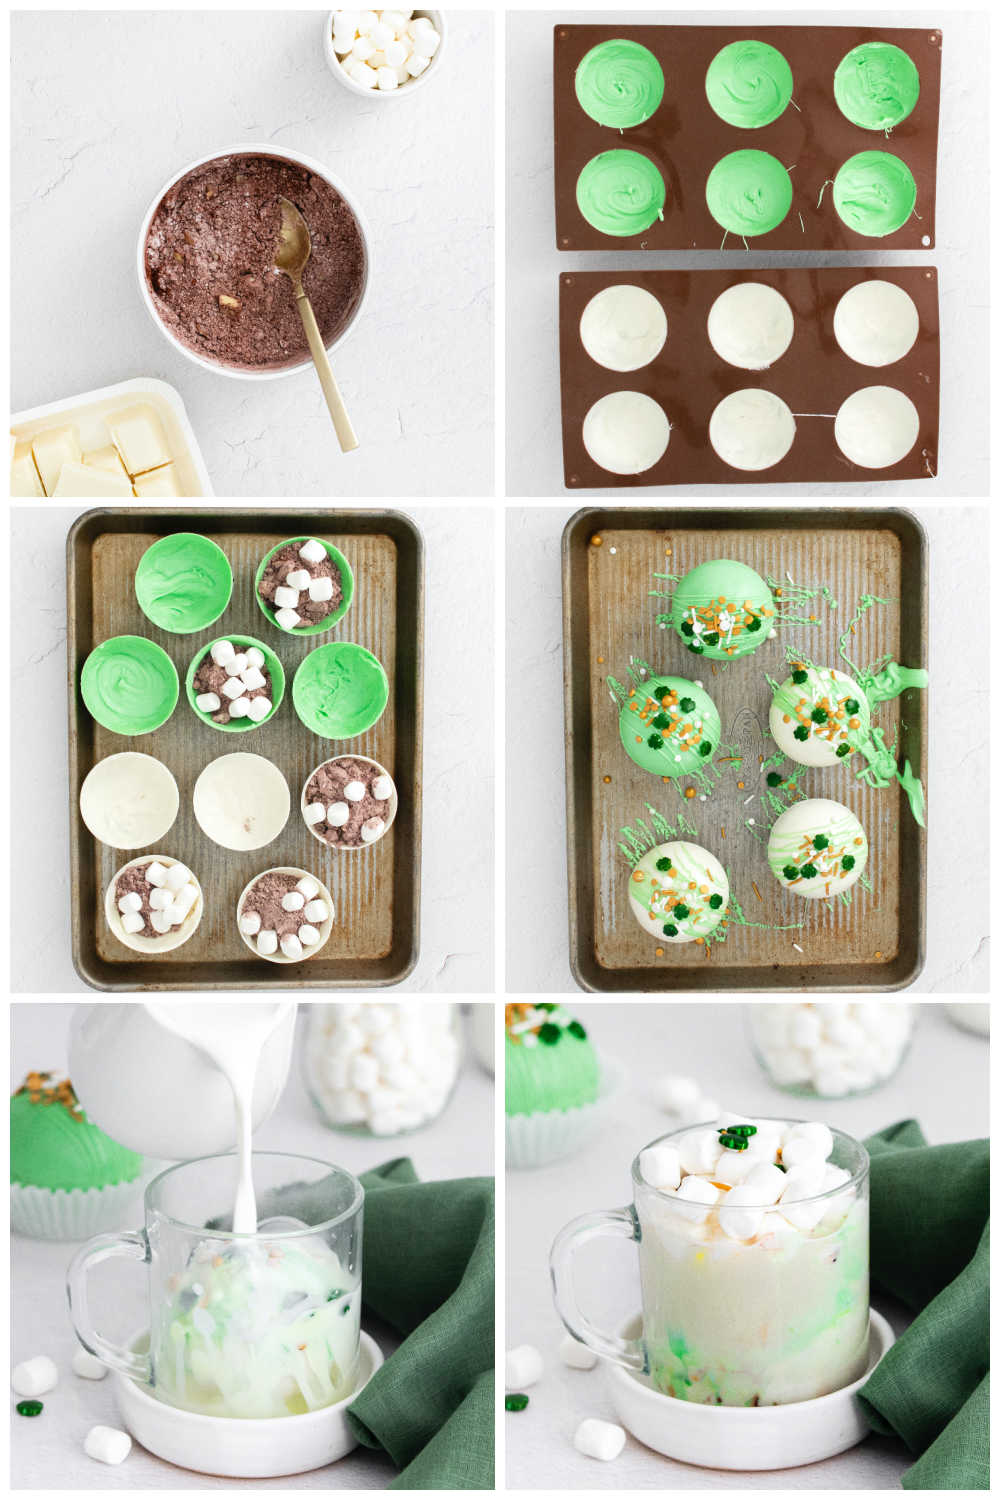 A picture collage of how to make St Patrick's Hot Chocolate Bombs.